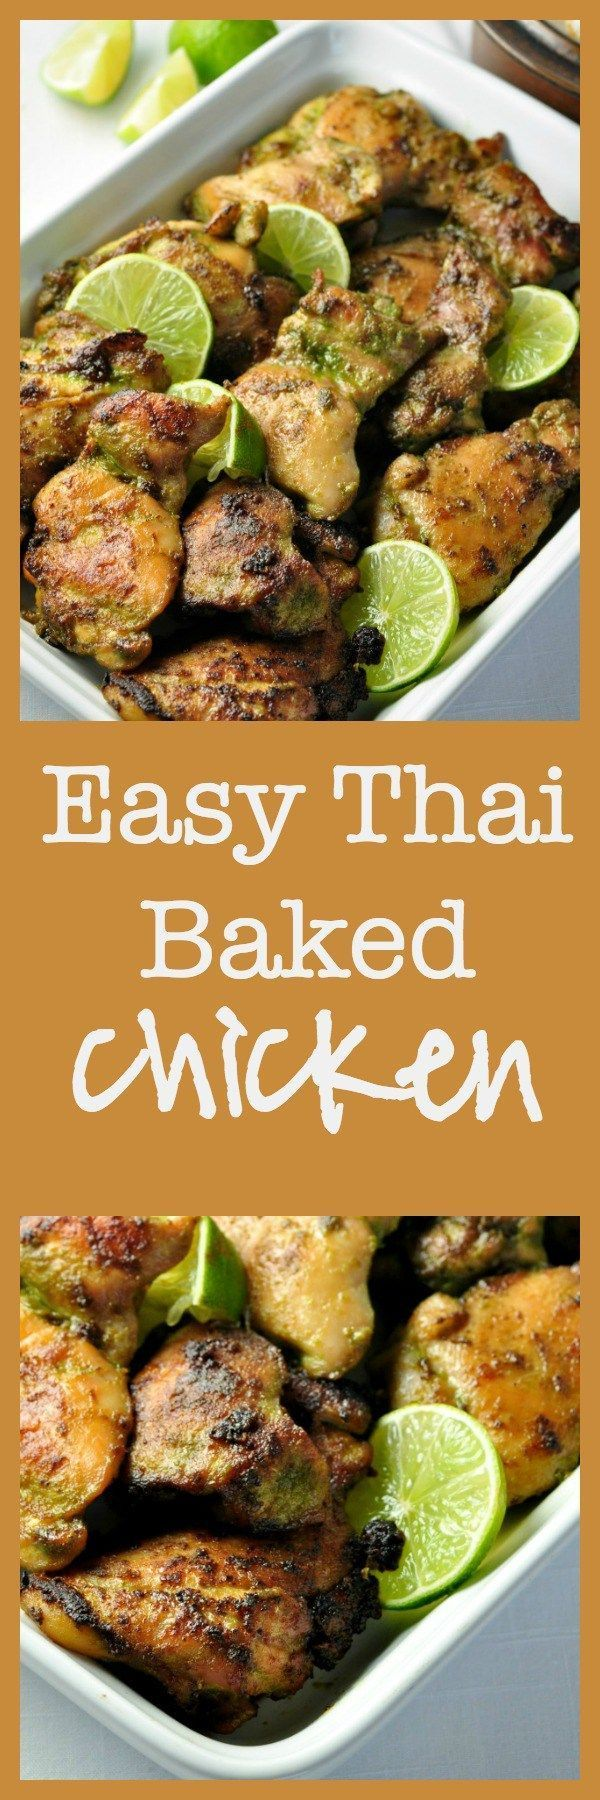 Easy Thai Baked Chicken. An easy make-ahead meal for busy nights. Cilantro, jalapeo, ginger, basil, garlic and coriander all play together to produce this aromatic, slightly spicy chicken dish that leaves you wanting more.